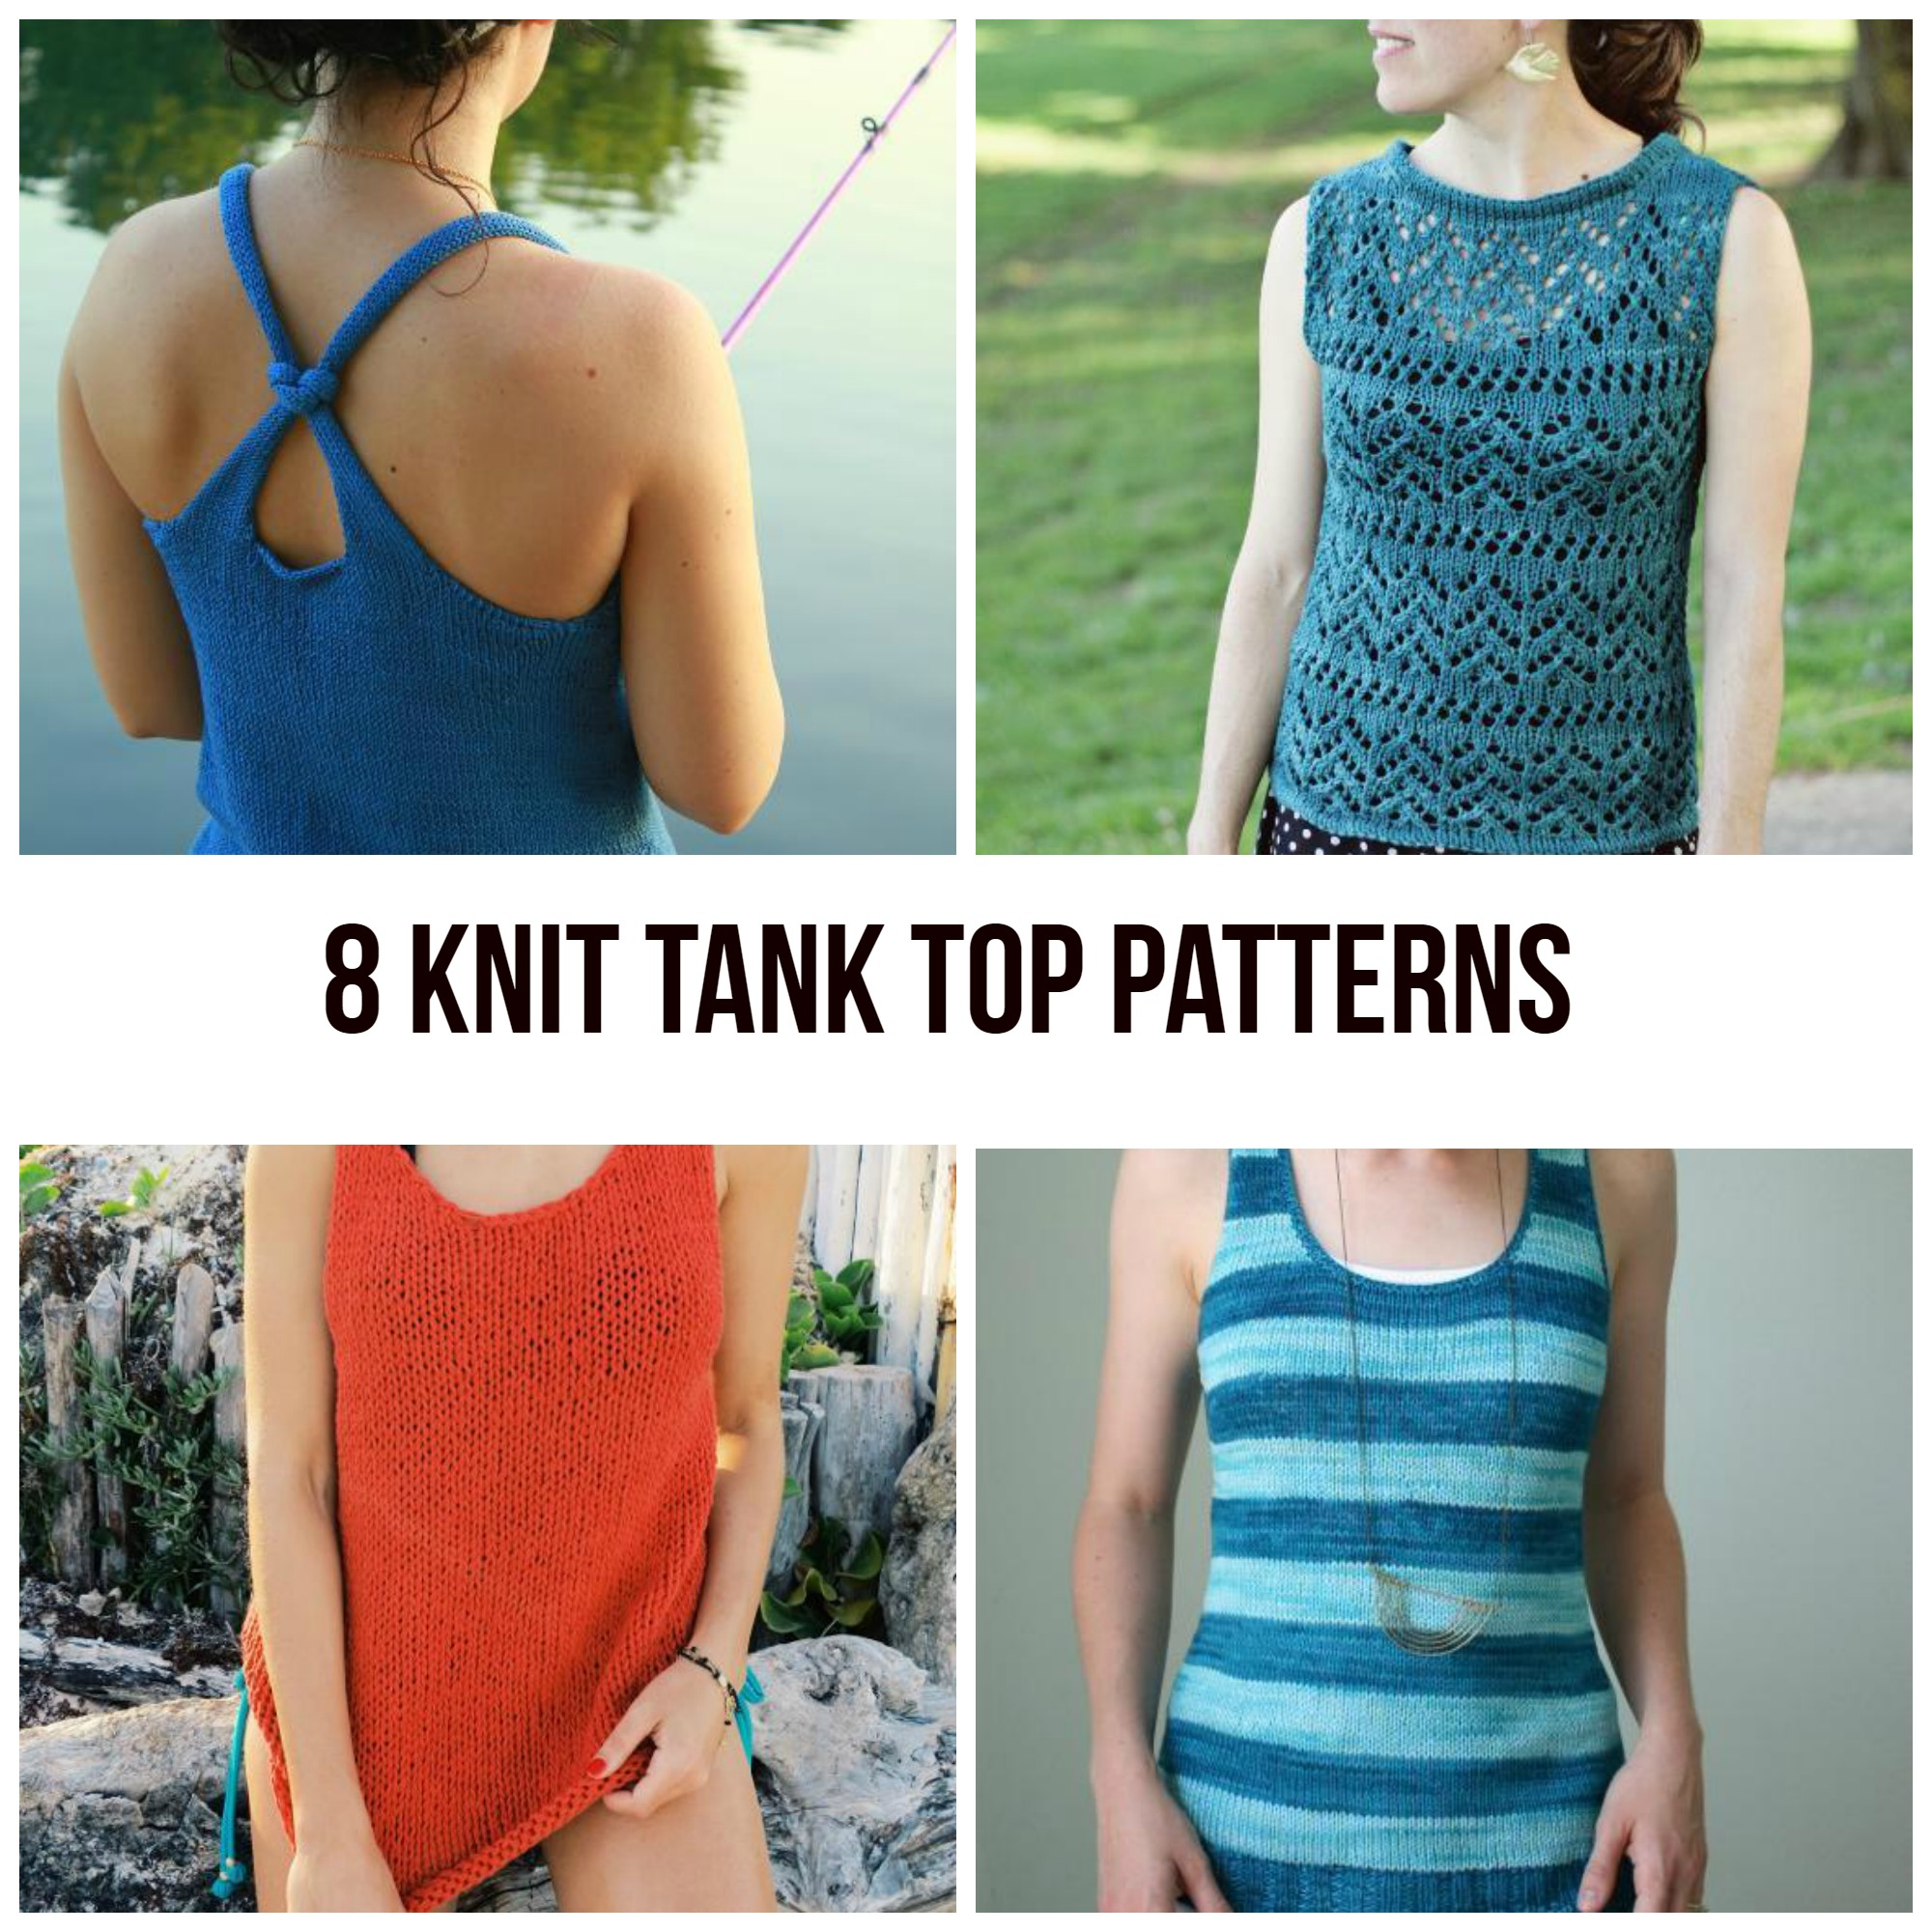 Knitted Tank Top Patterns Knit Tank Top Patterns For Summer